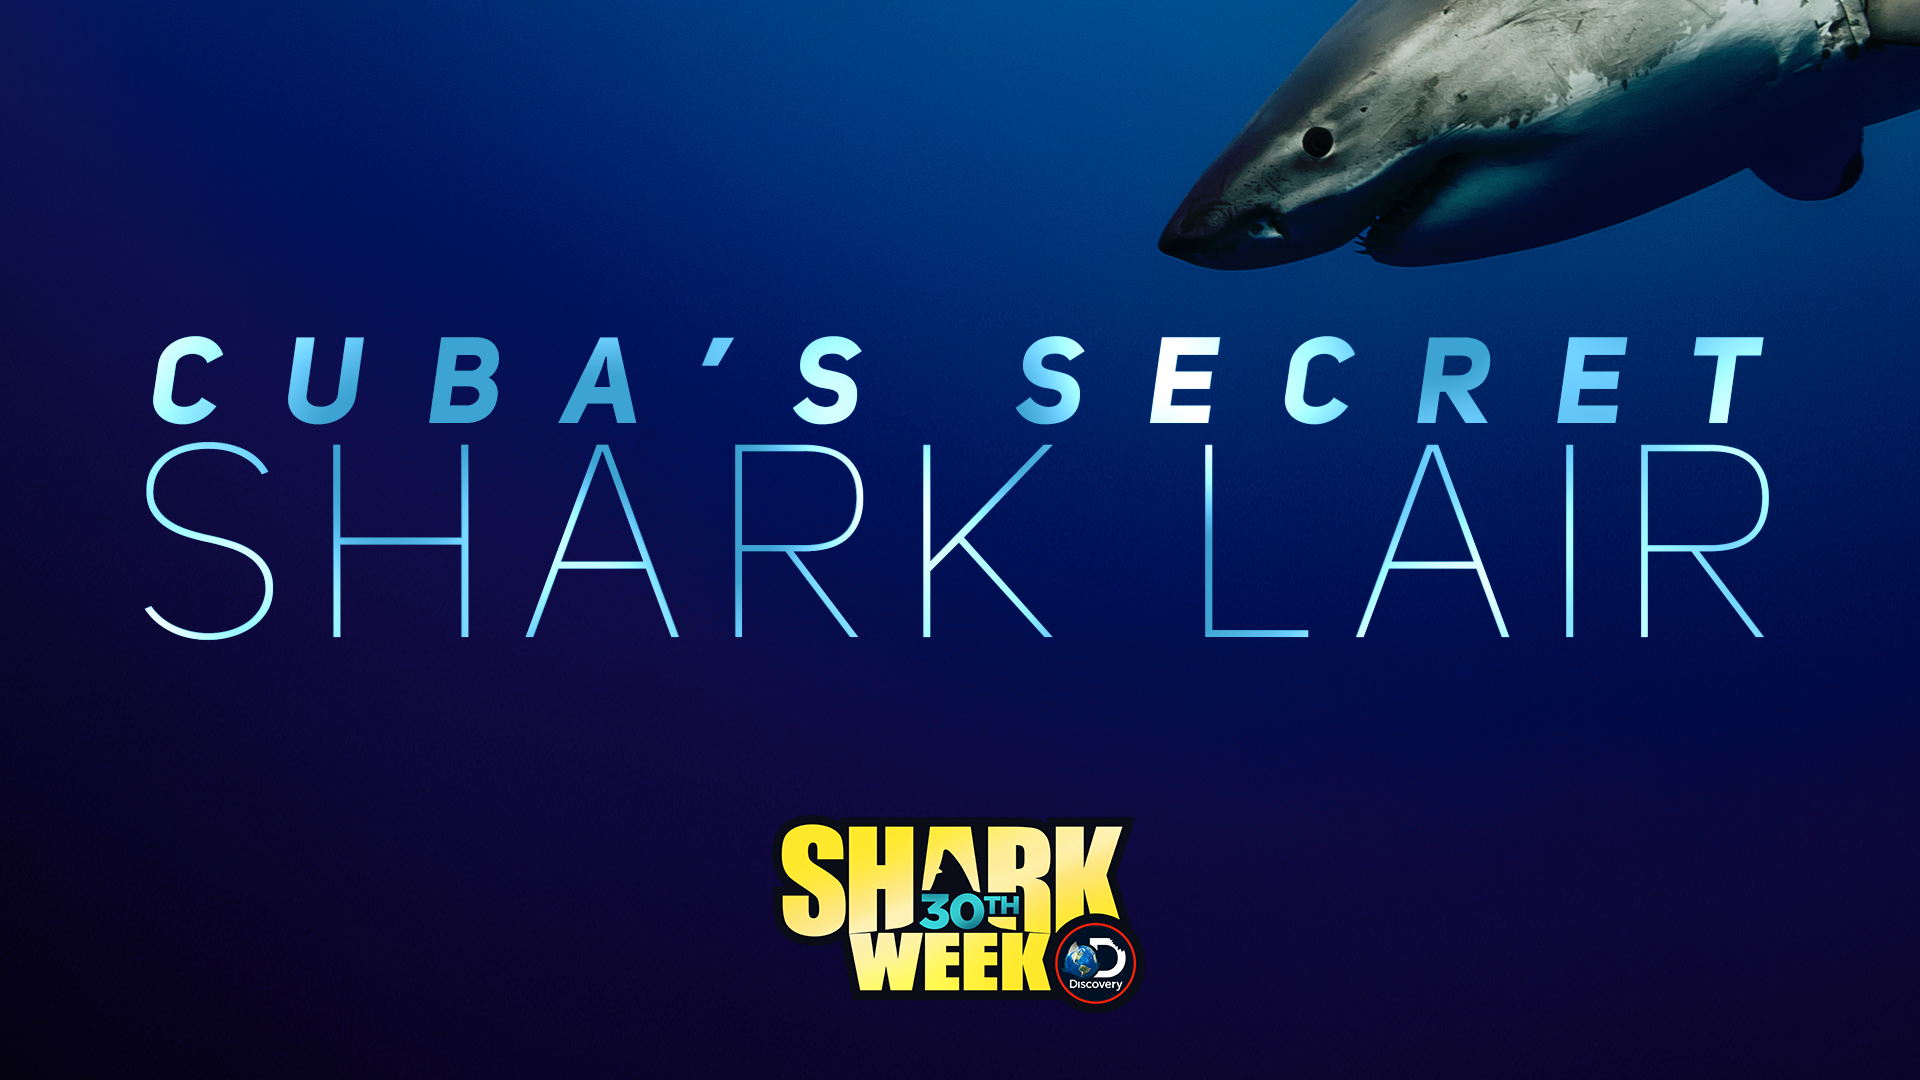 Cuba's Sharks - Exploring the pristine habitats of the 'Gardens of the Queen' Tristan leads the search for the famous great hammerhead that hunts the plentiful and healthy marine life in this exquisite location.